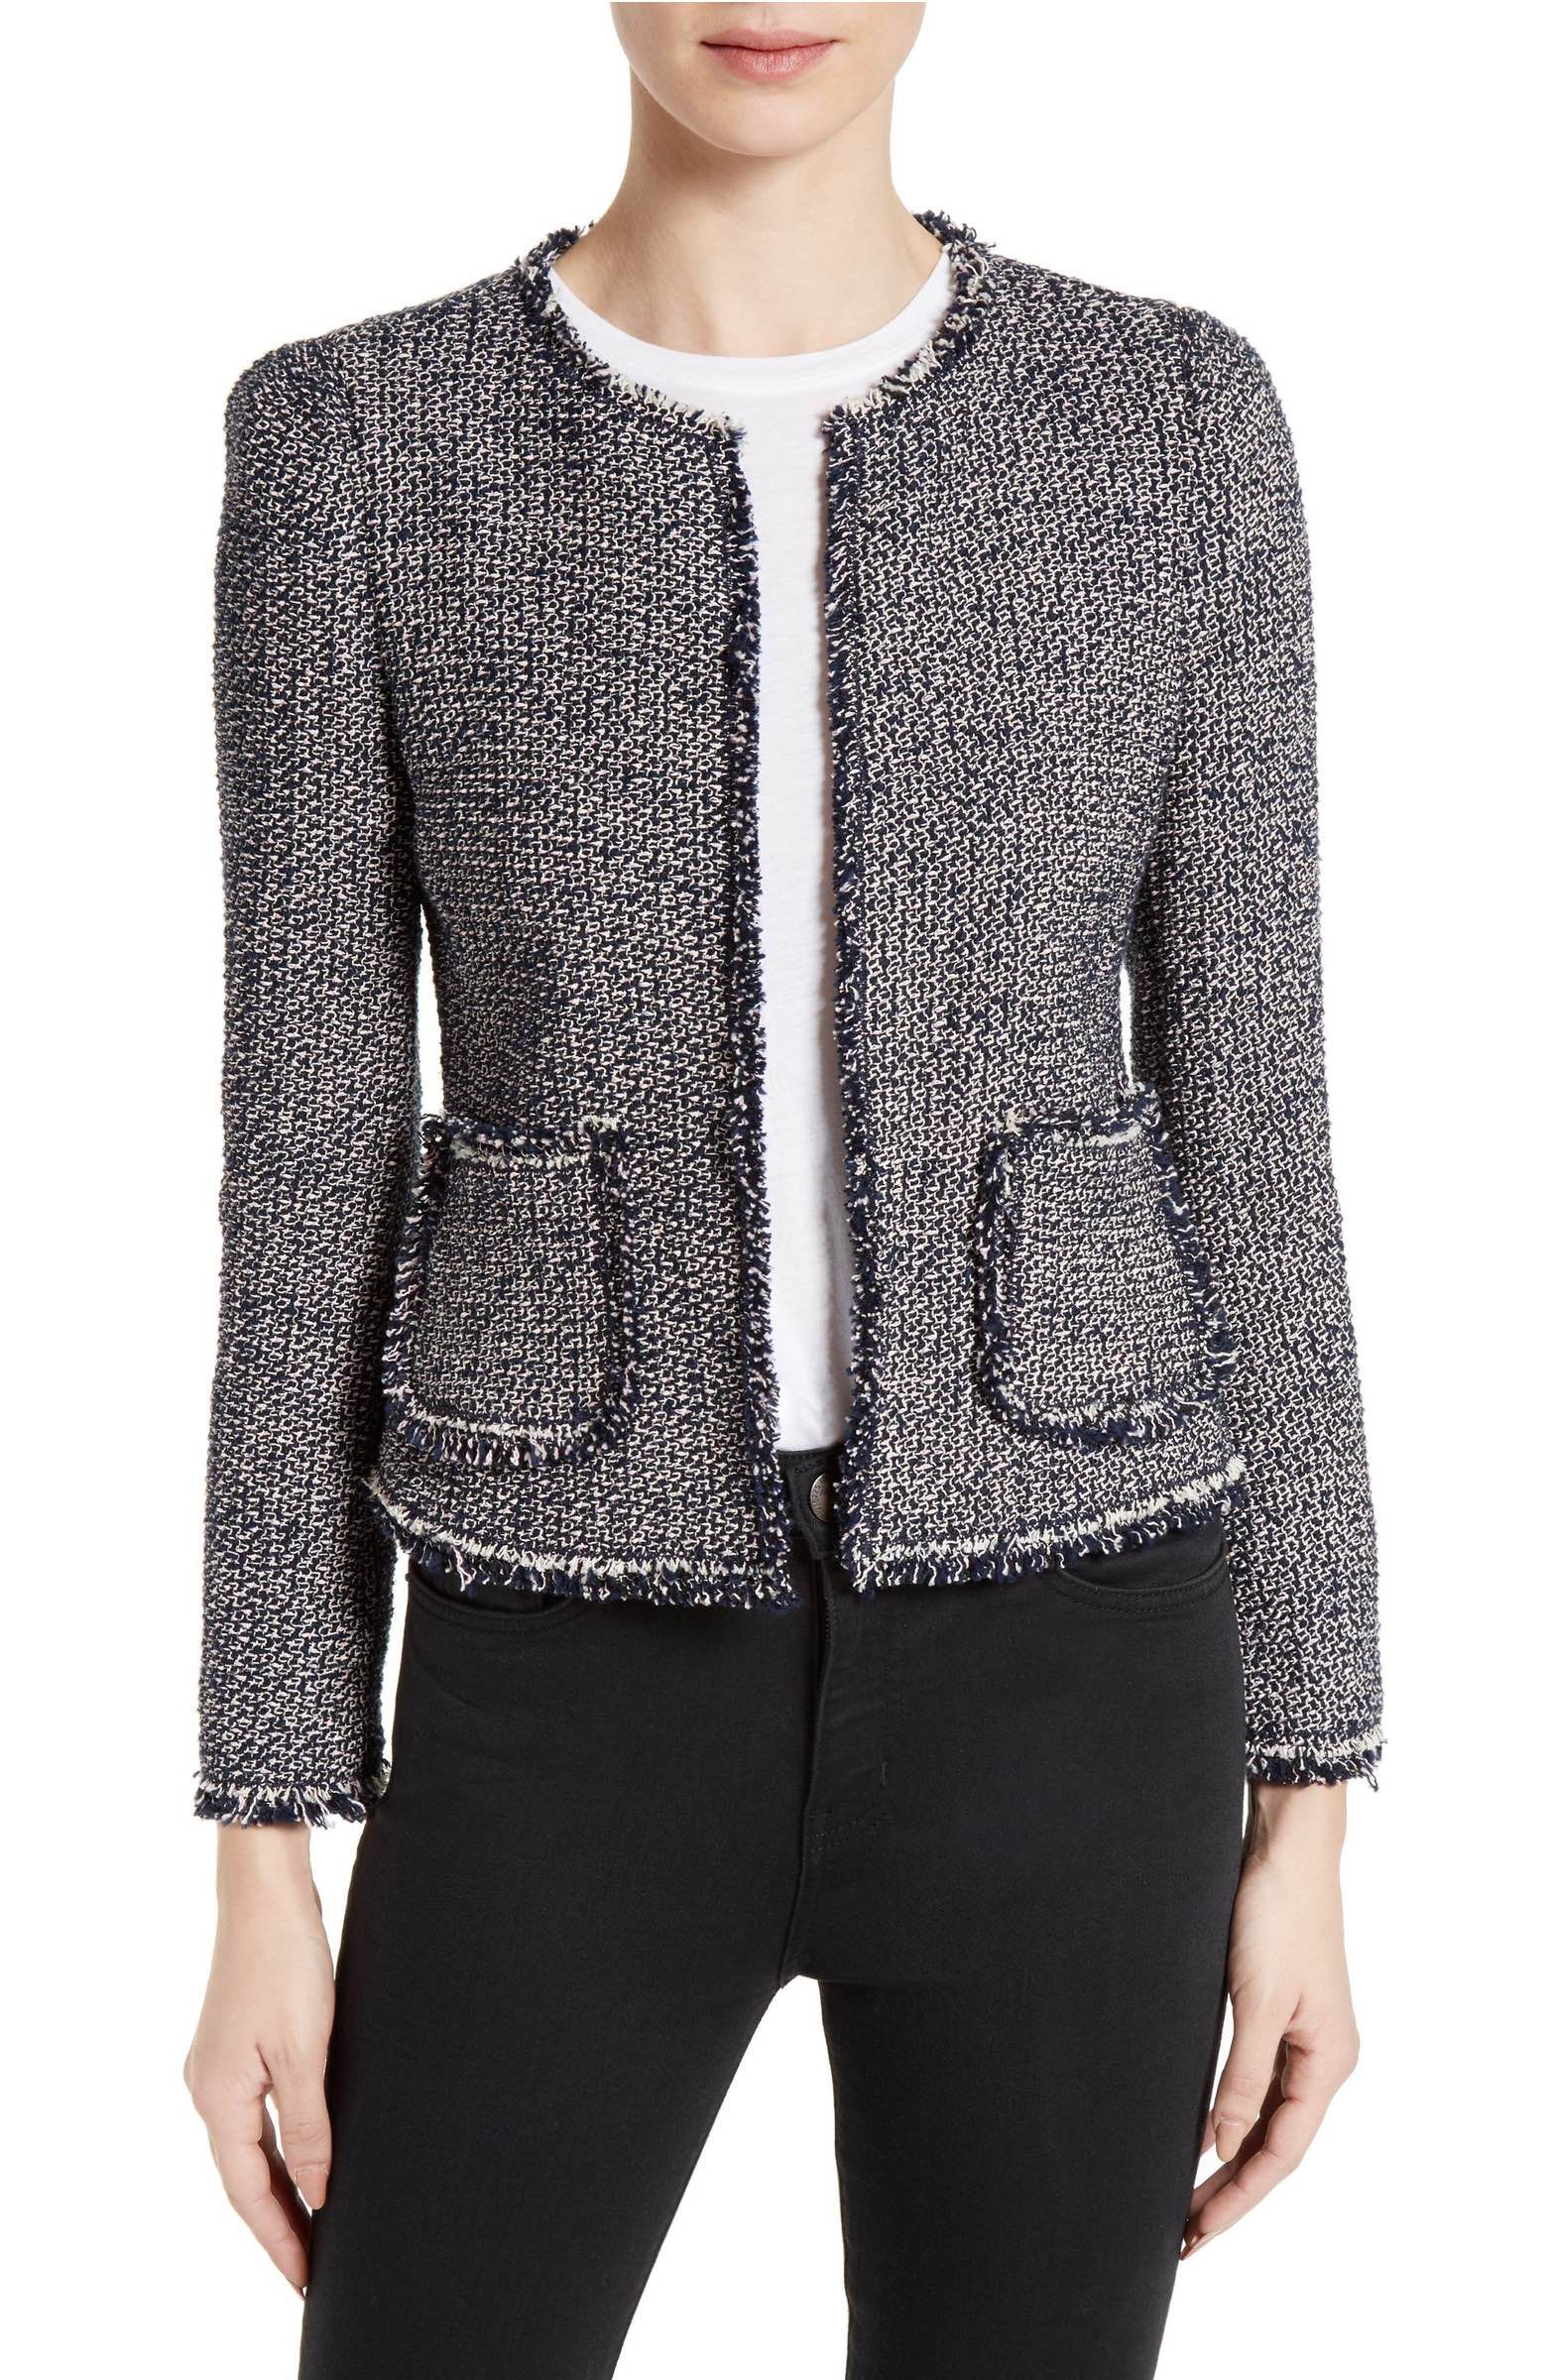 2749f1333 Main Image - Rebecca Taylor Confetti Tweed Jacket | Clothes and More ...